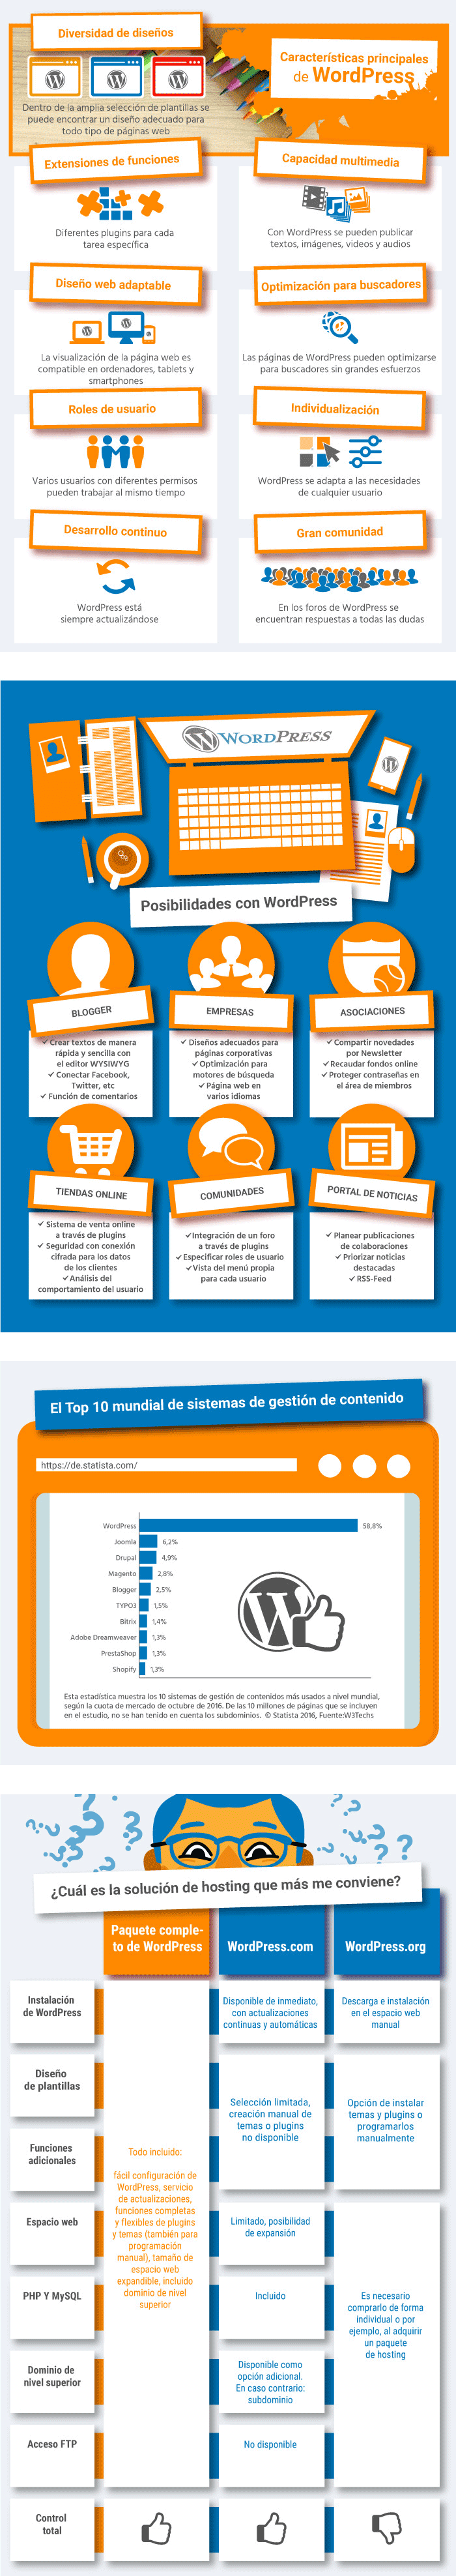 infografia sobre WordPress